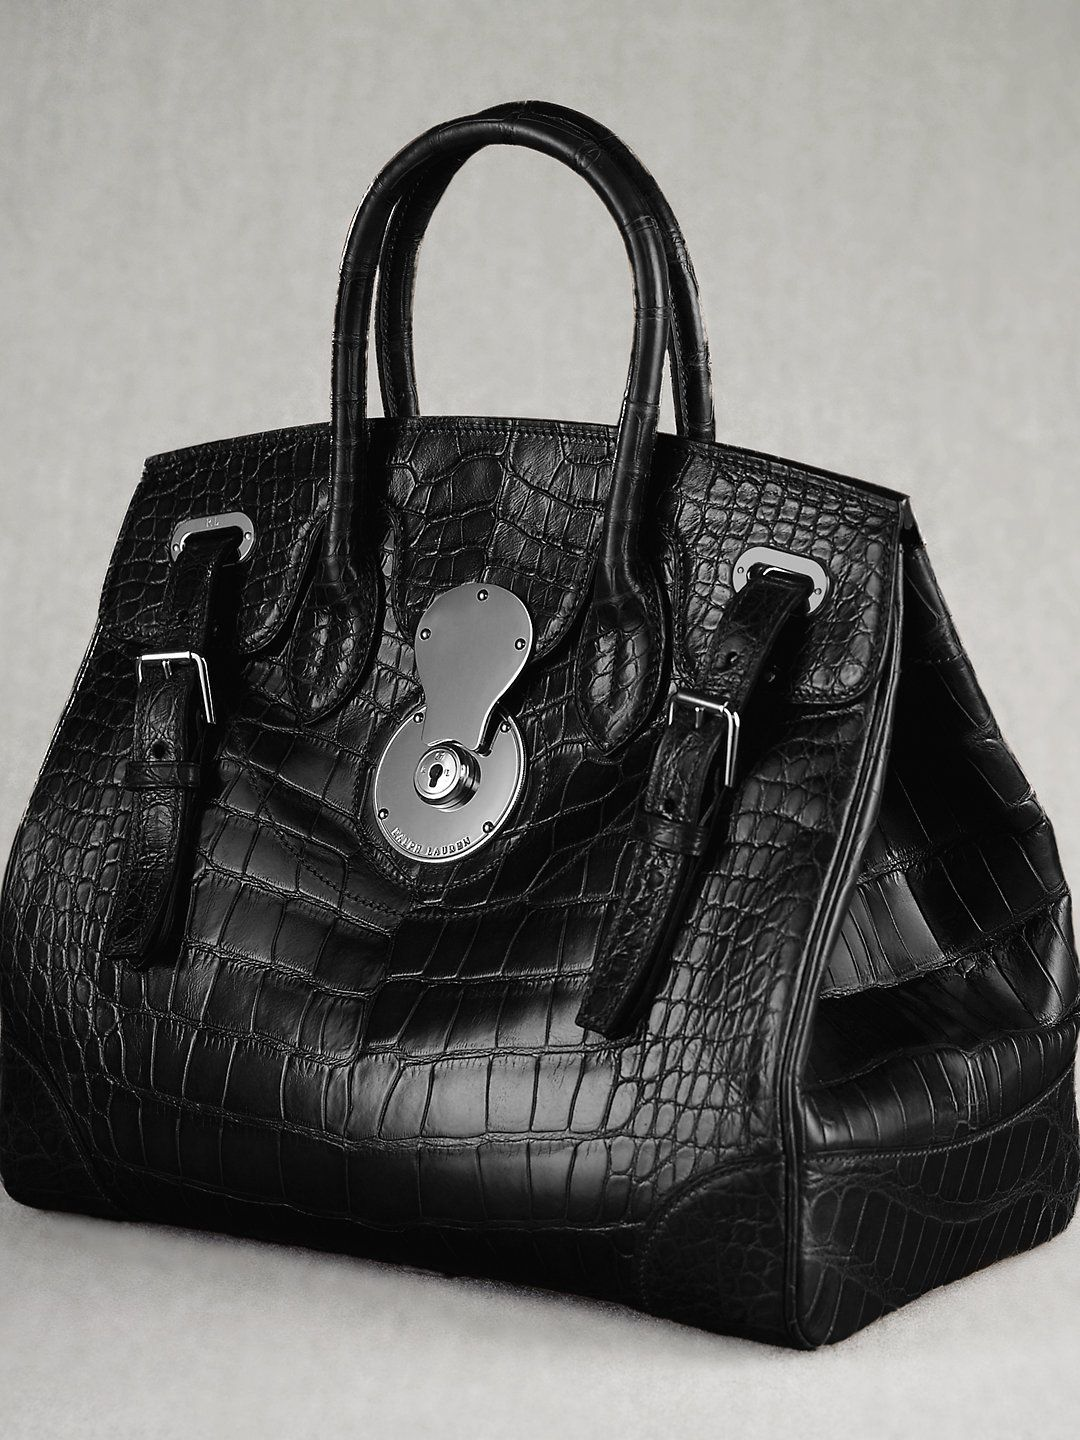 The Alligator Ricky Bag - The Ricky Bag   Luxury Accessories - RalphLauren.com